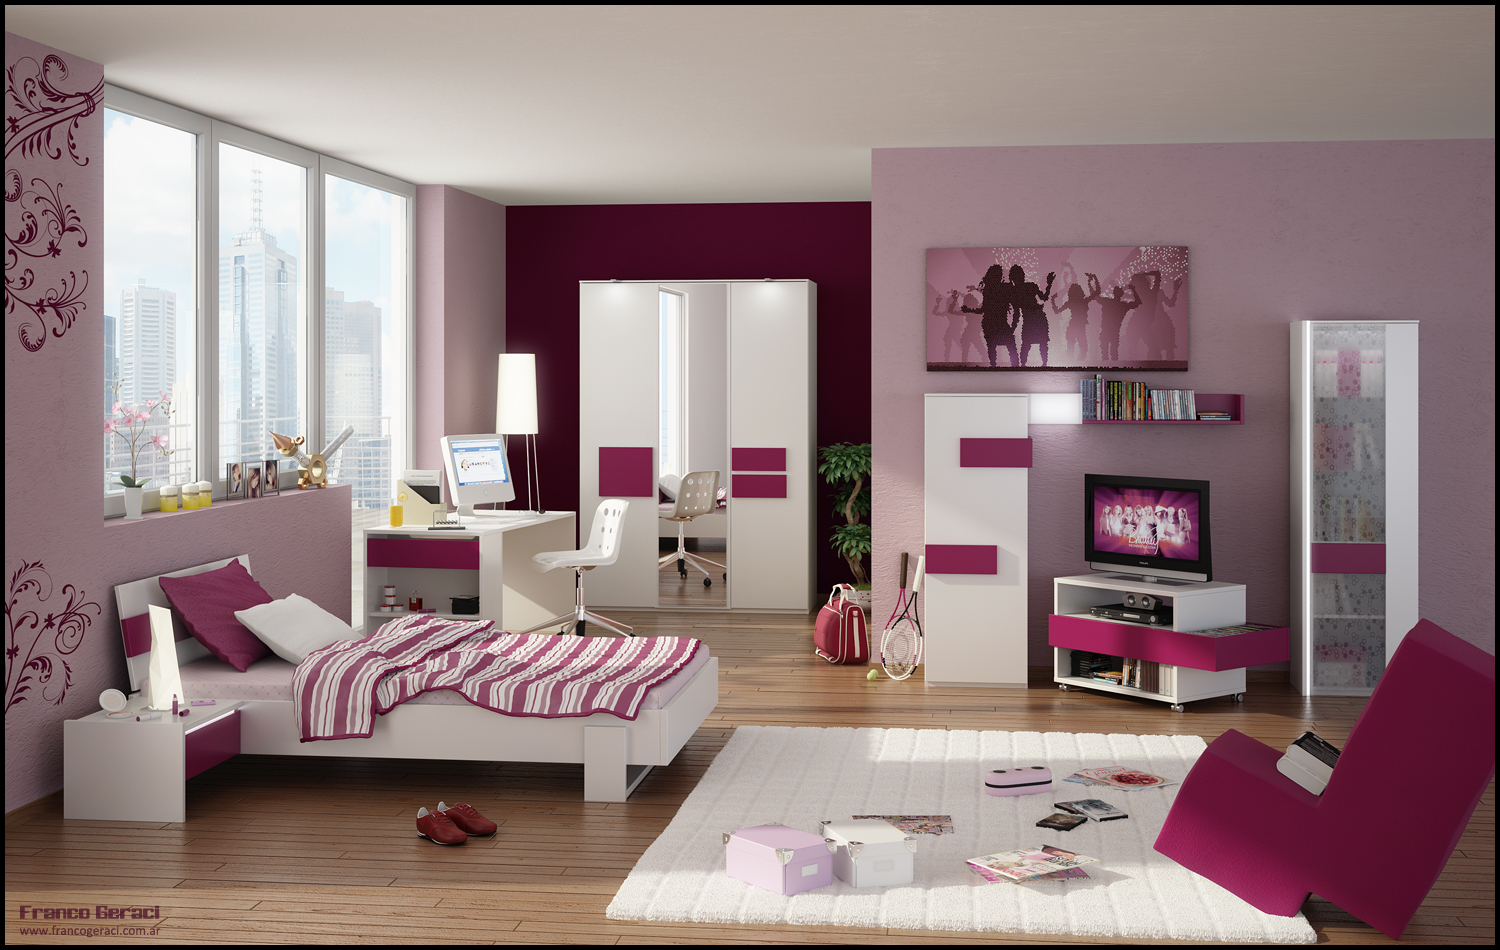 Teenage room designs - Apartment bedroom design ideas ...